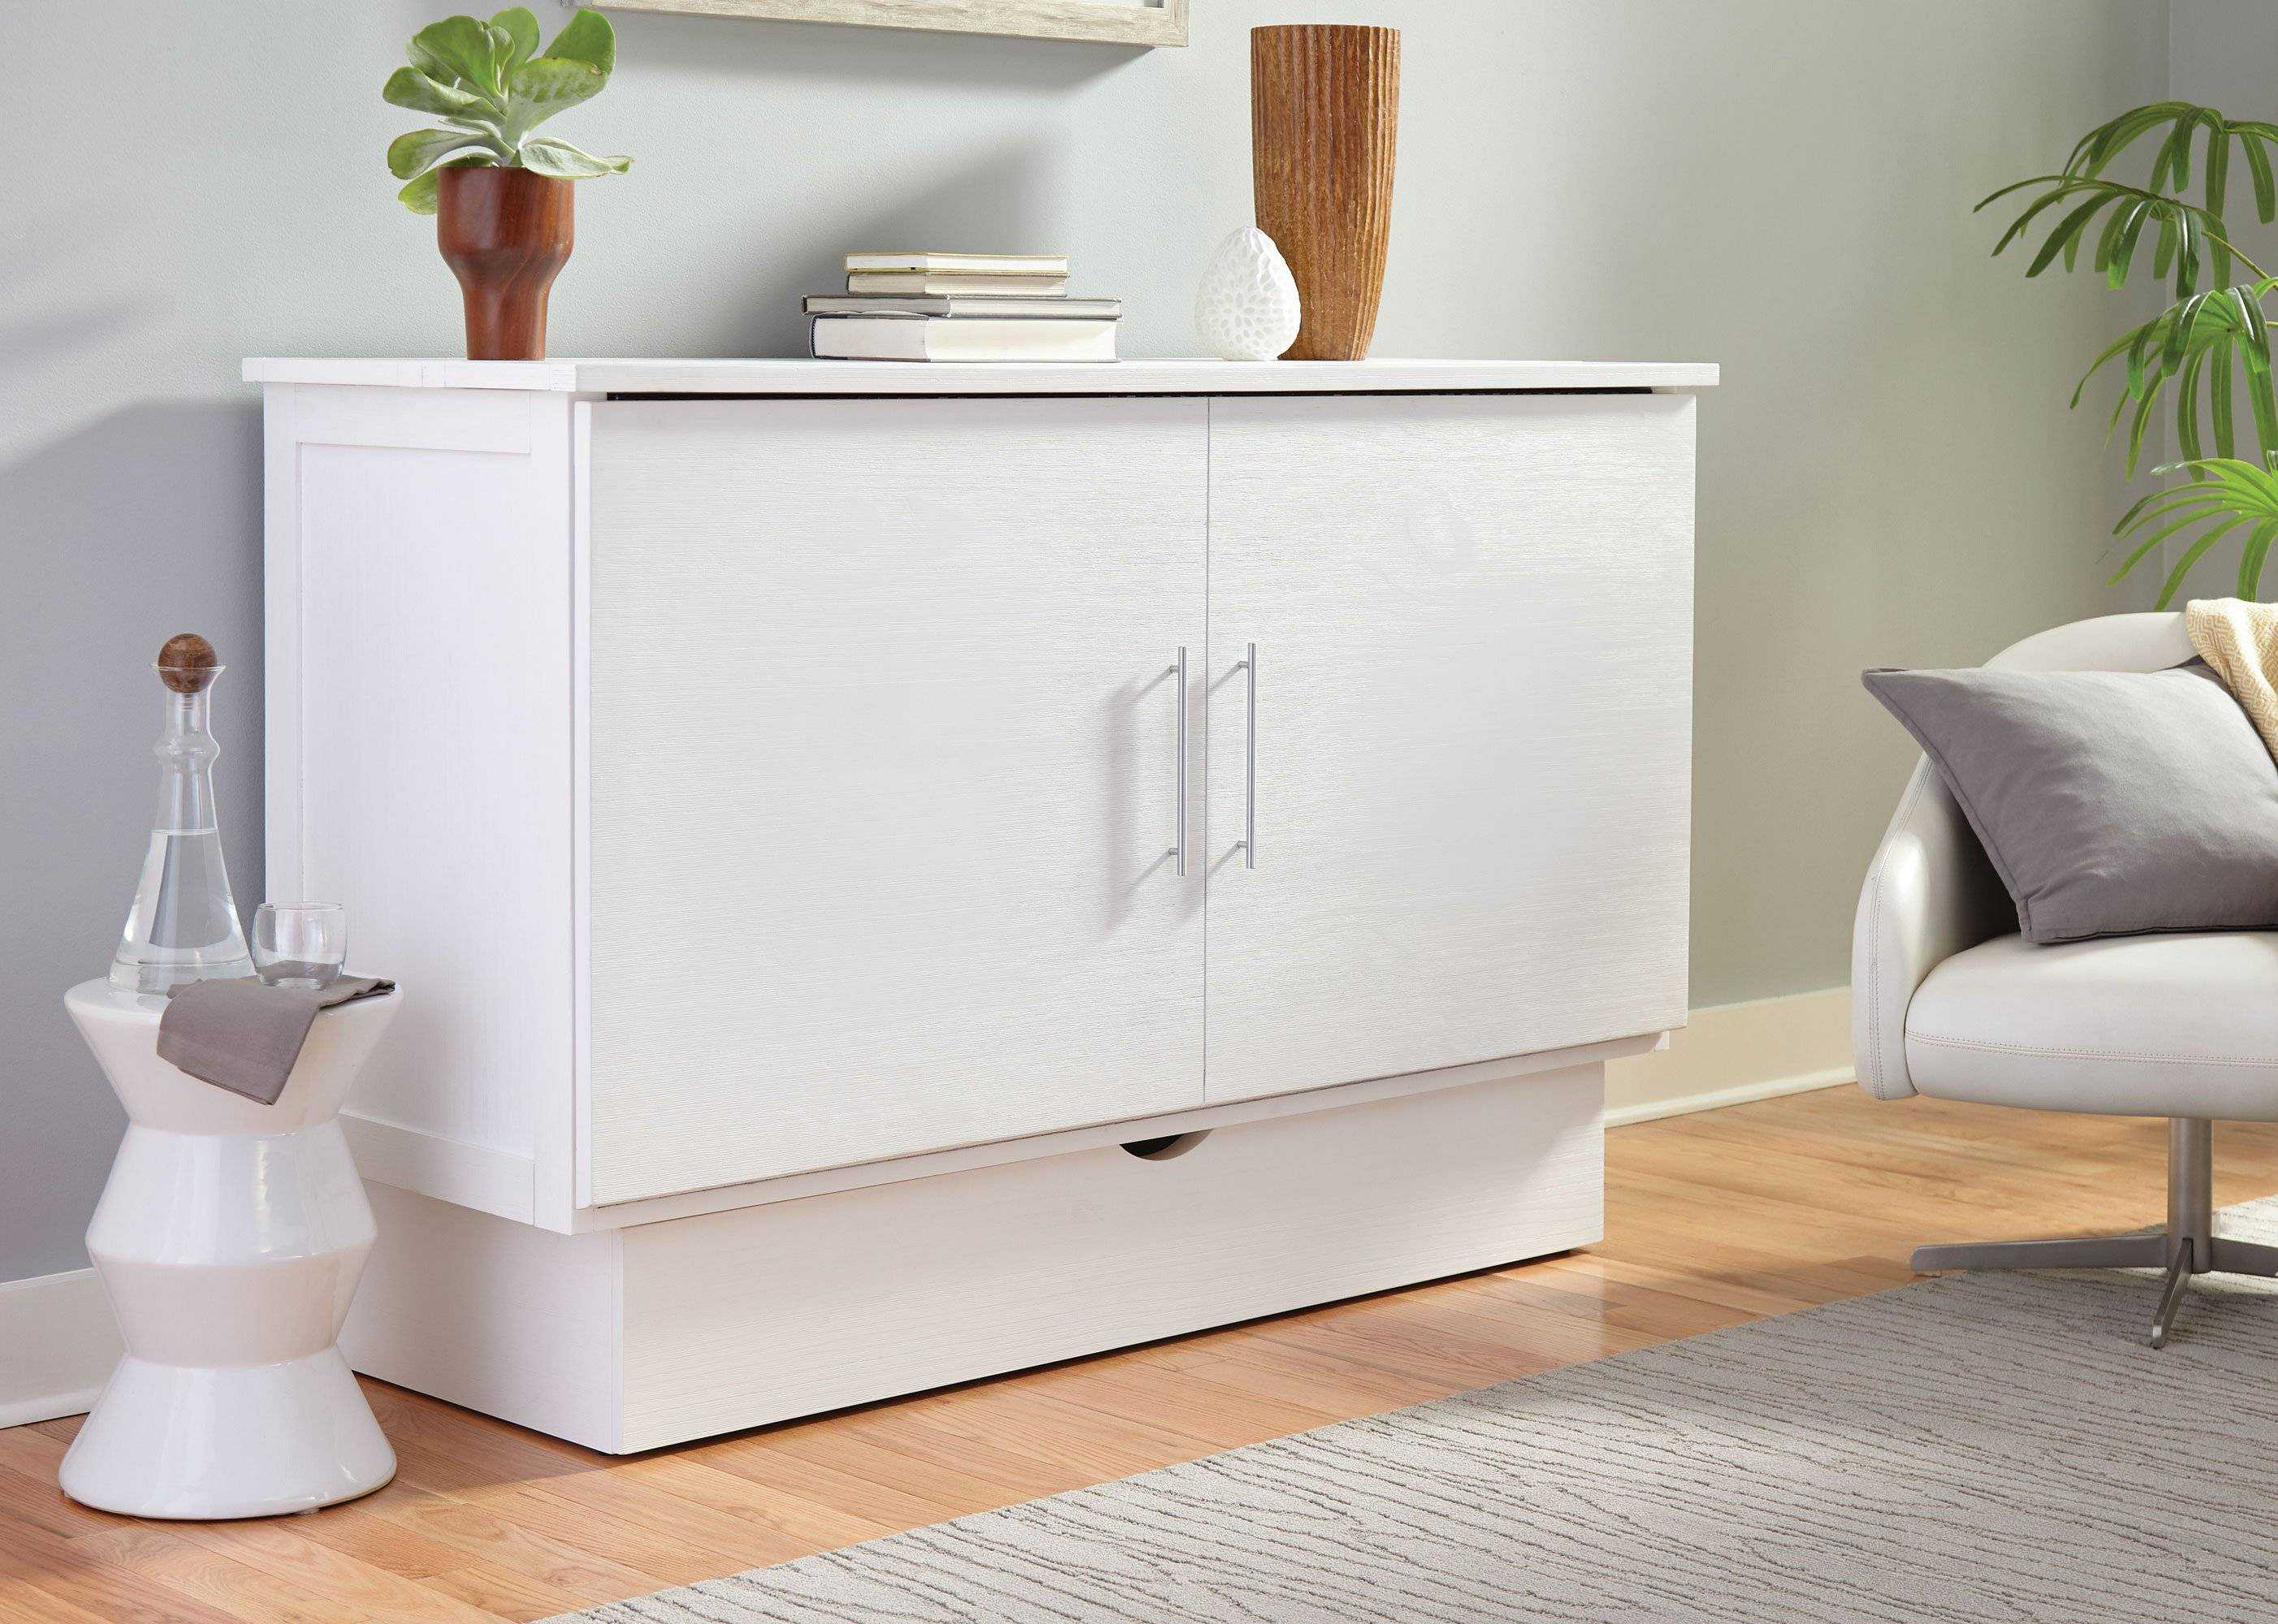 Creden-ZzZ Murphy Cabinet Pull Out Bed, Size: Full, Style: Madrid image 2